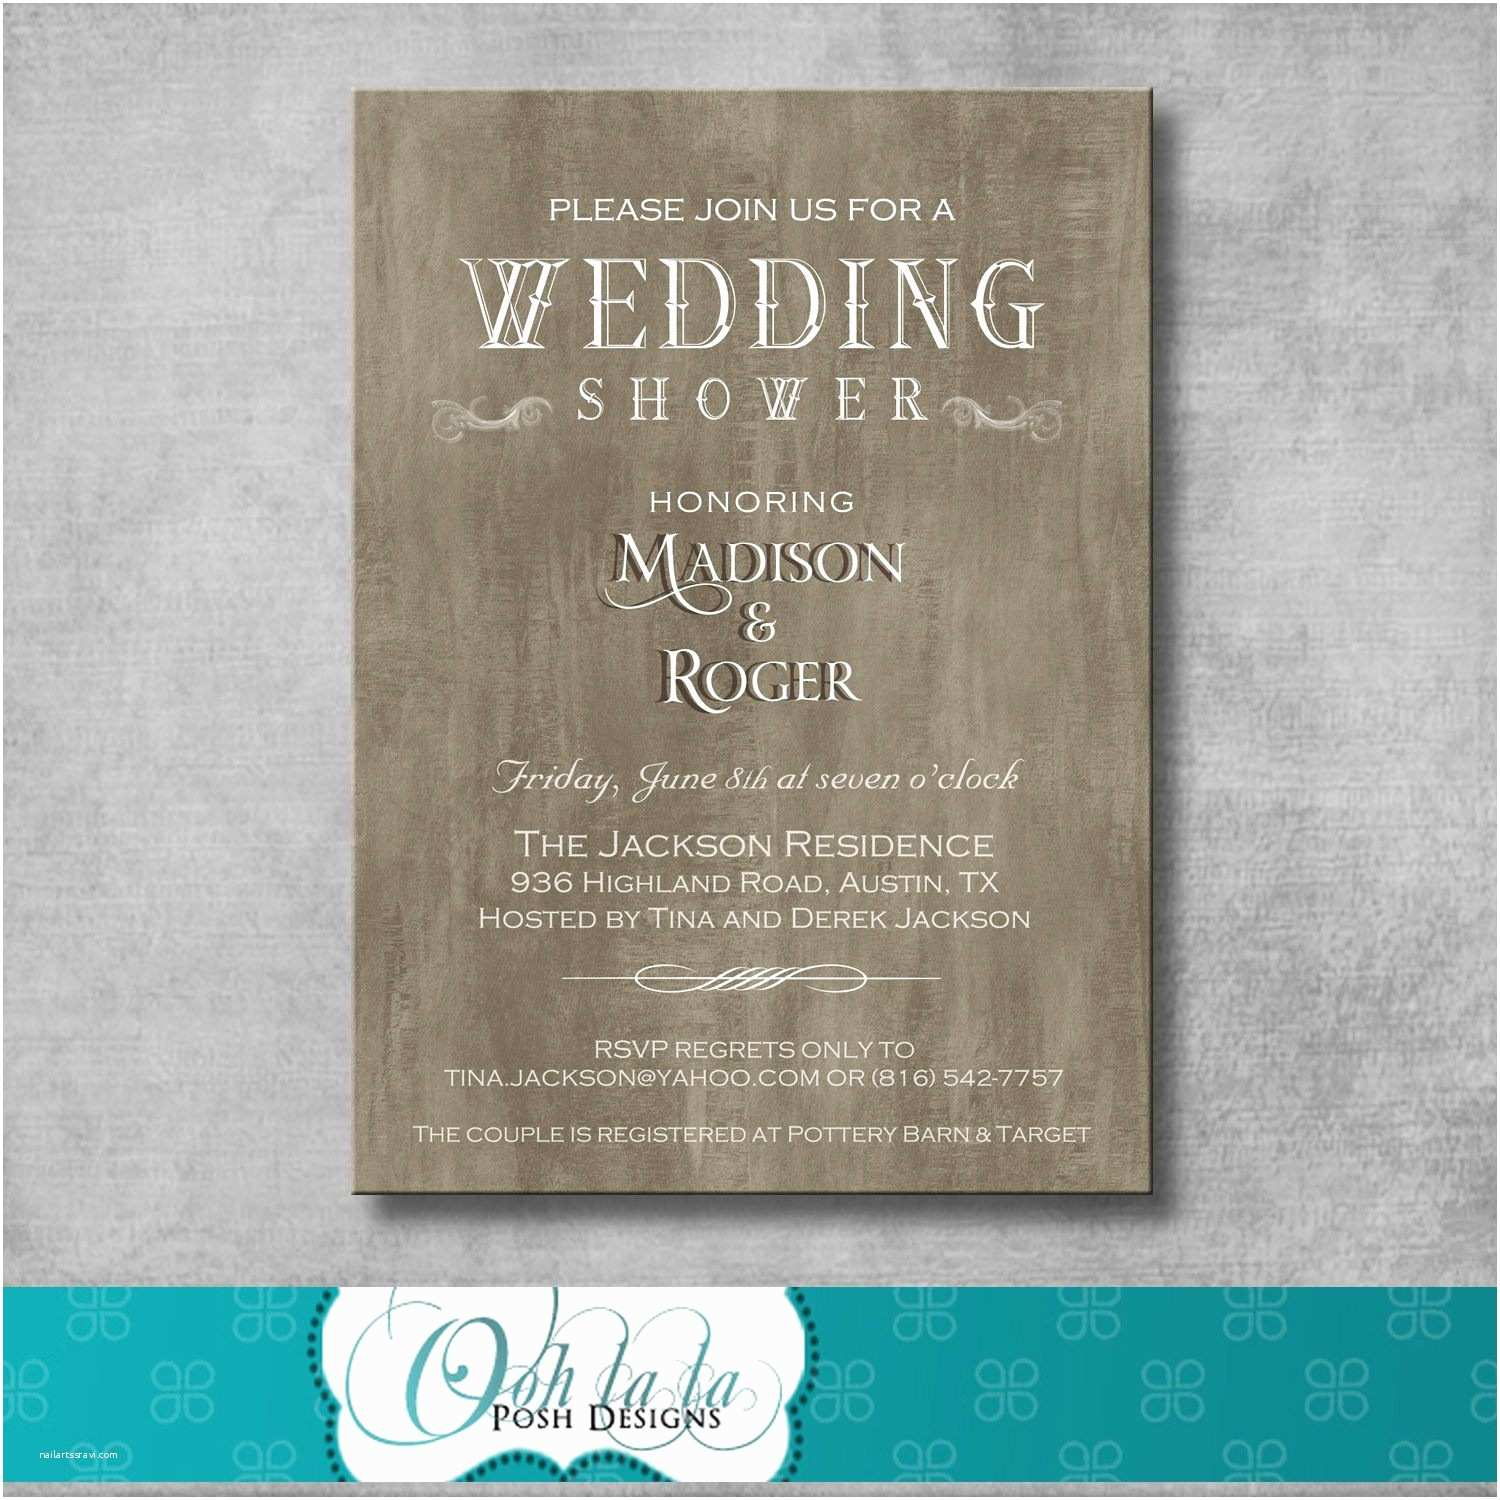 Cheap Bridal Shower Invitations Baby Shower Invitation Baby Shower Invitation Templates